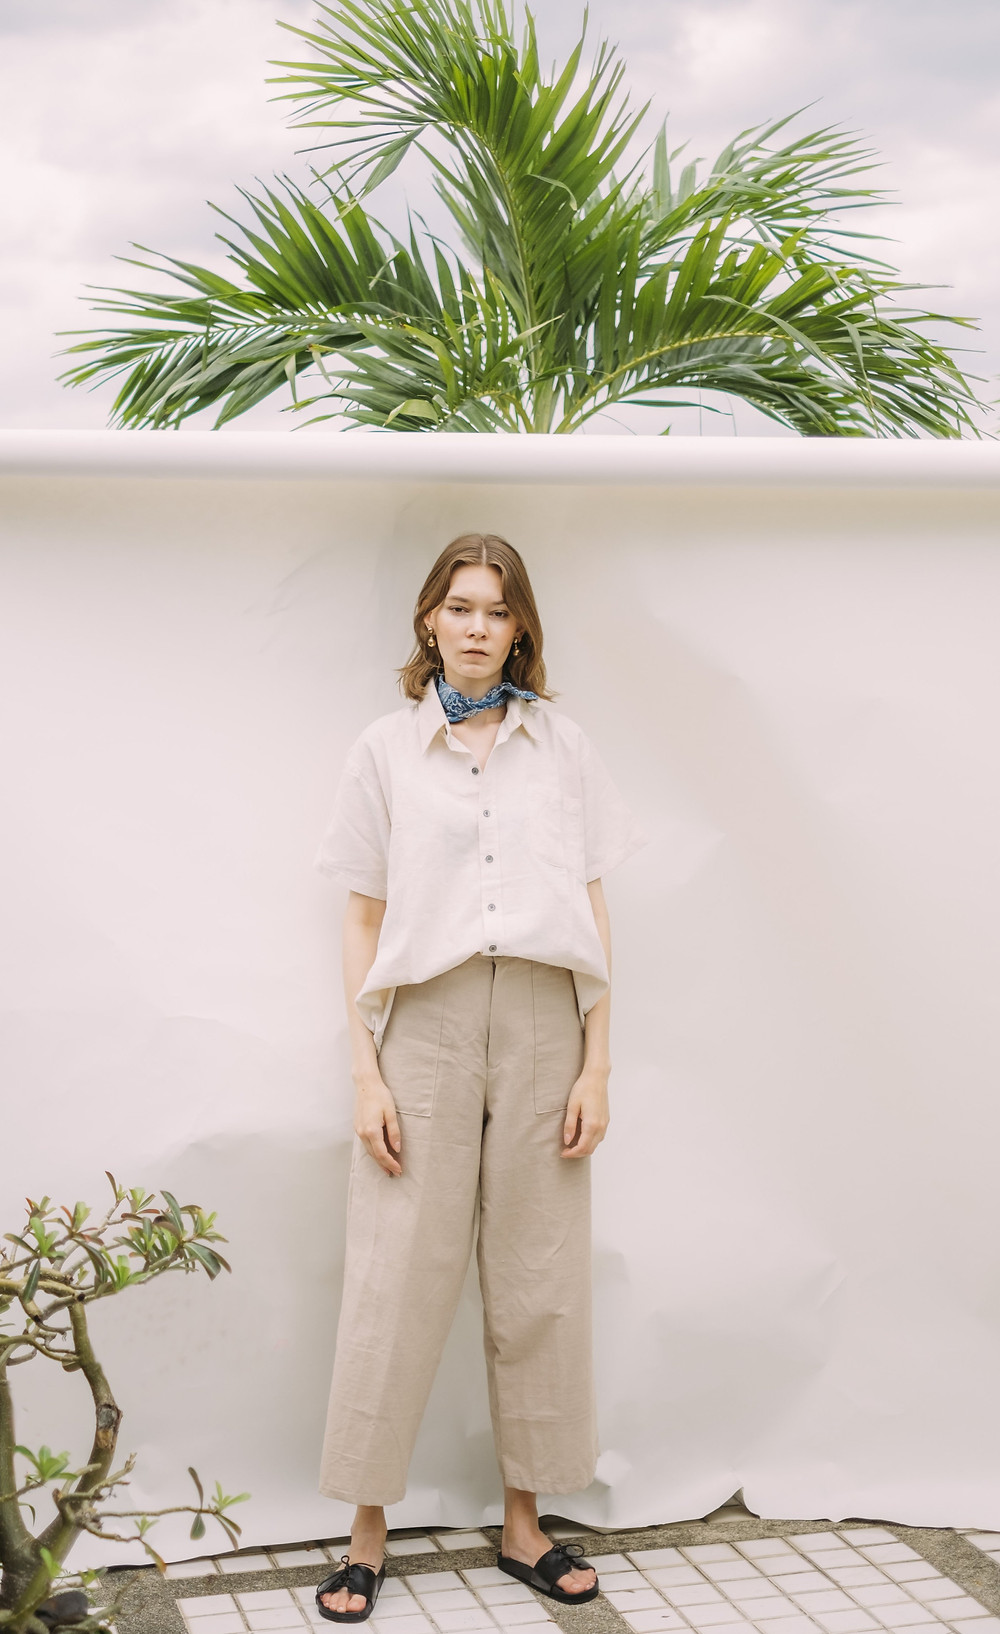 Girl standing against a white wall in a white shirt tucked into the beige wide trousers